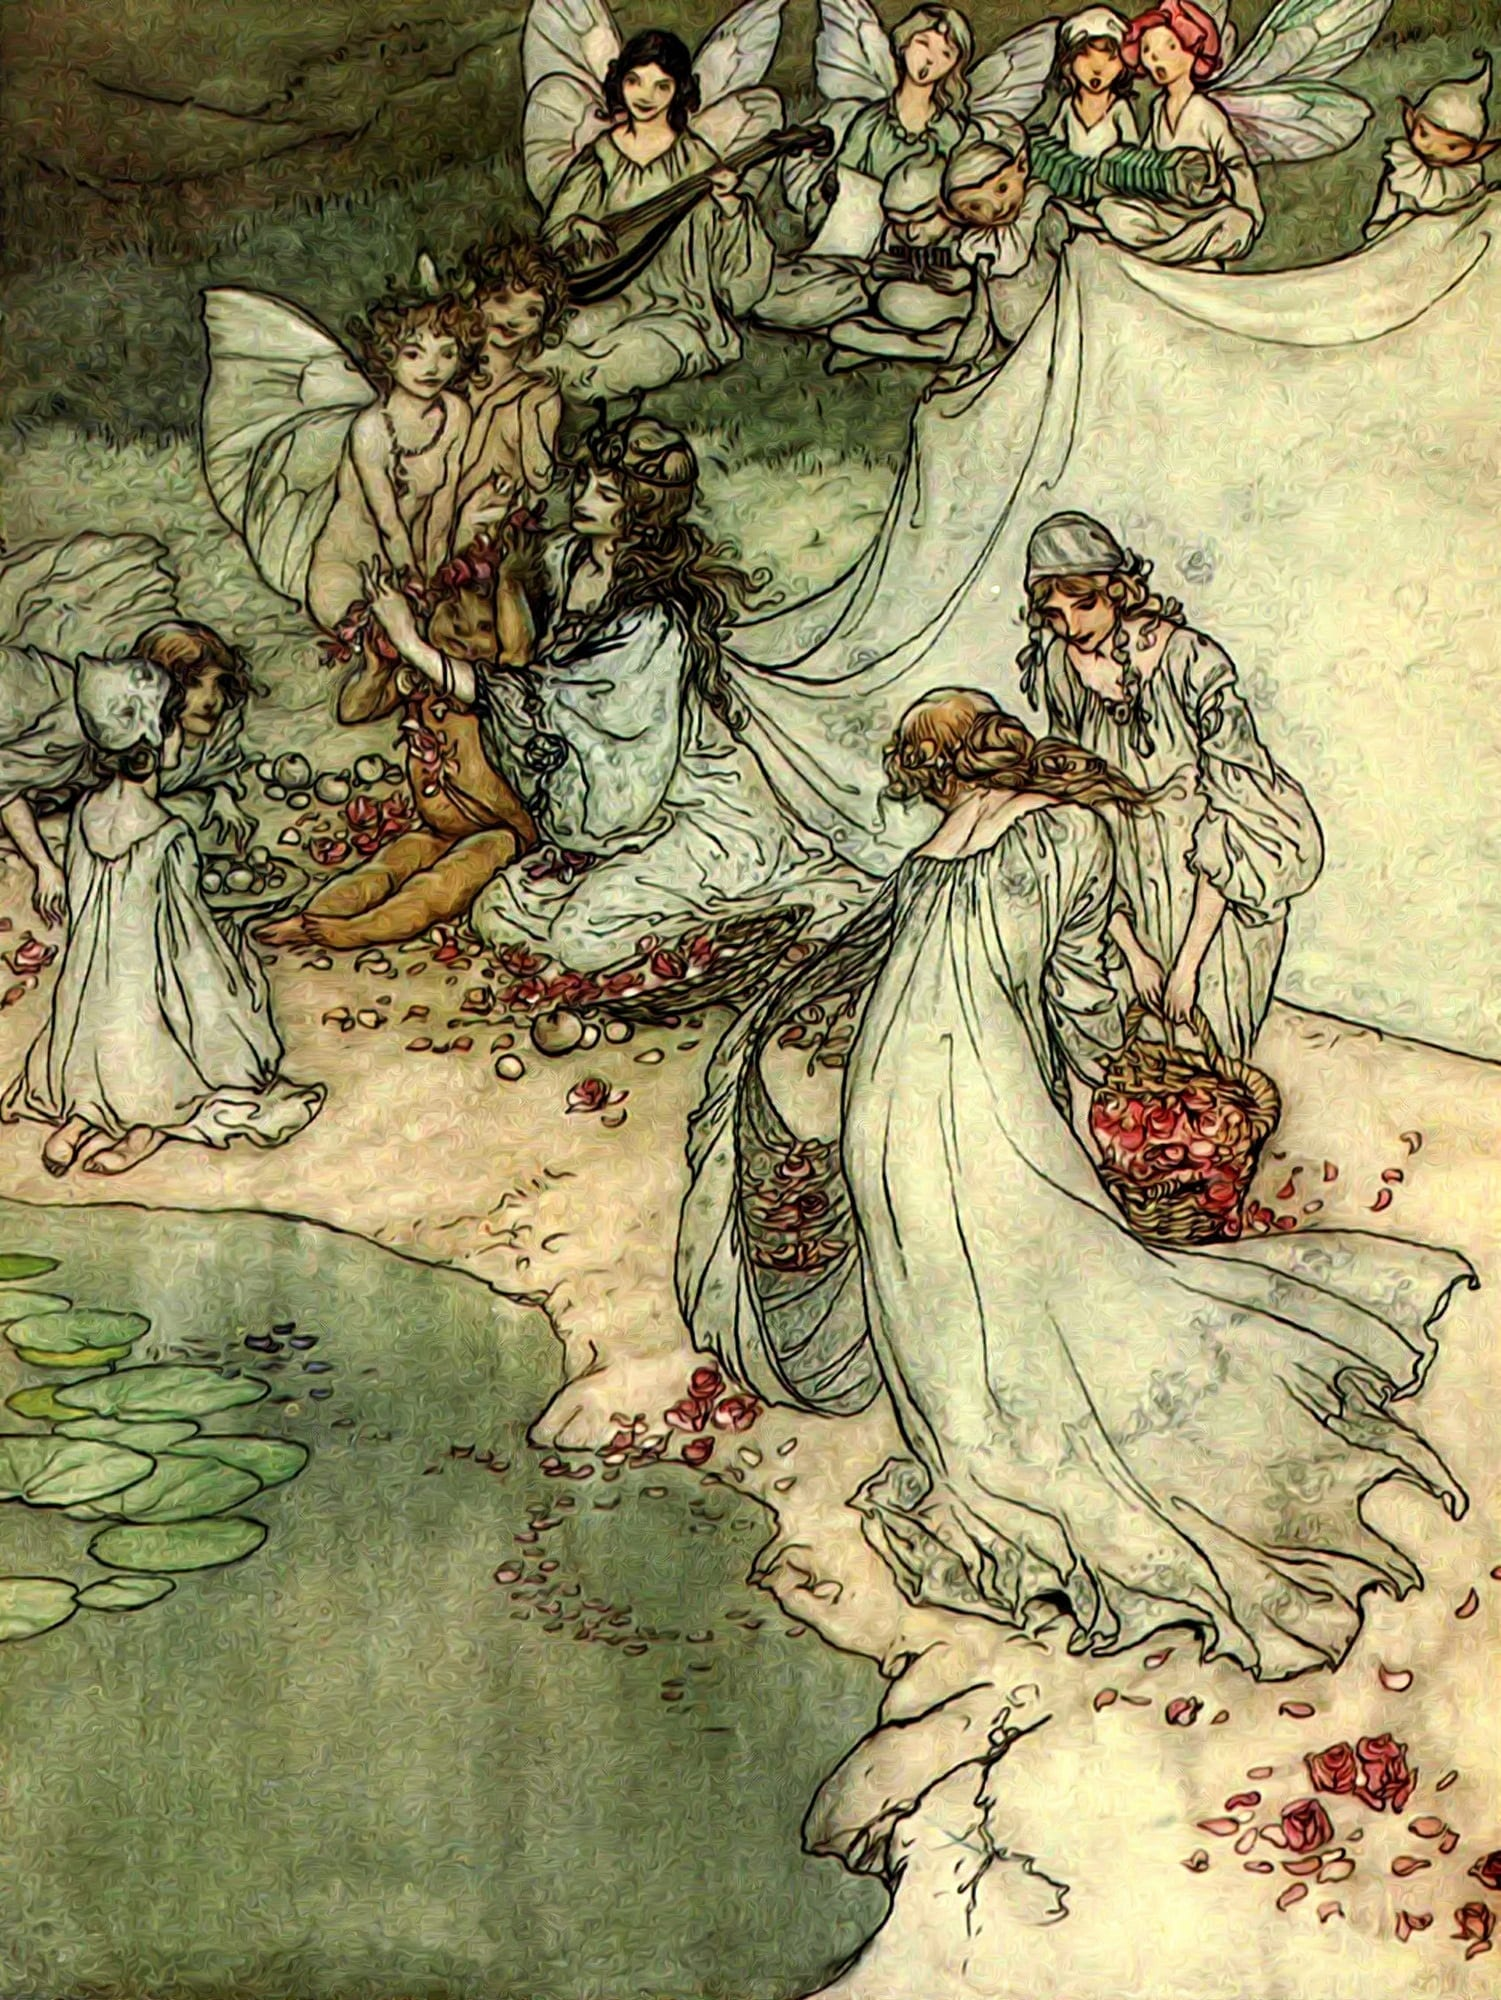 An illustration of fairies dressed in white, carrying baskets of red rose petals